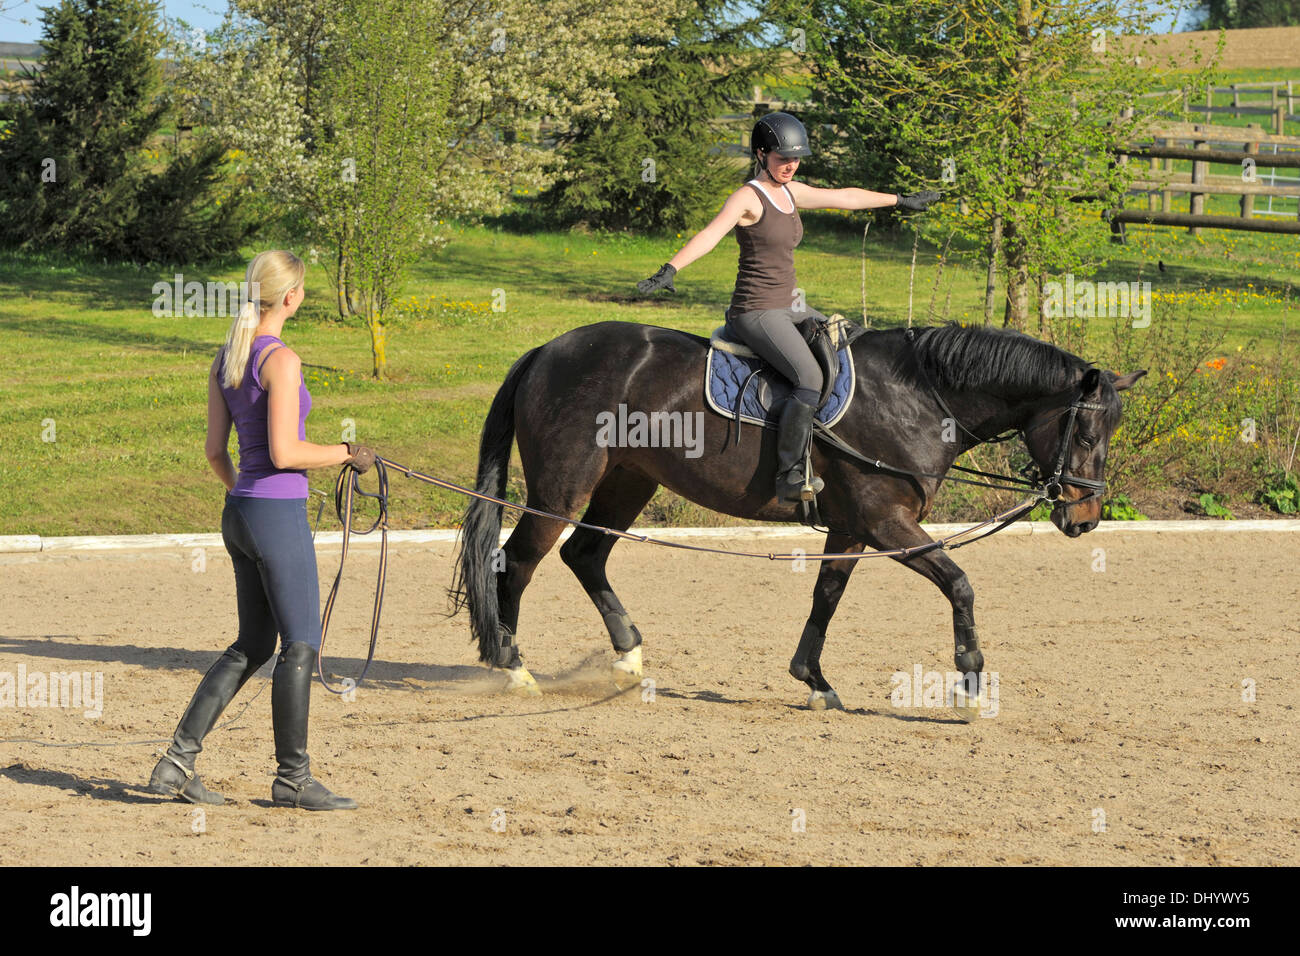 You tell Lunging the adult rider book right! excellent